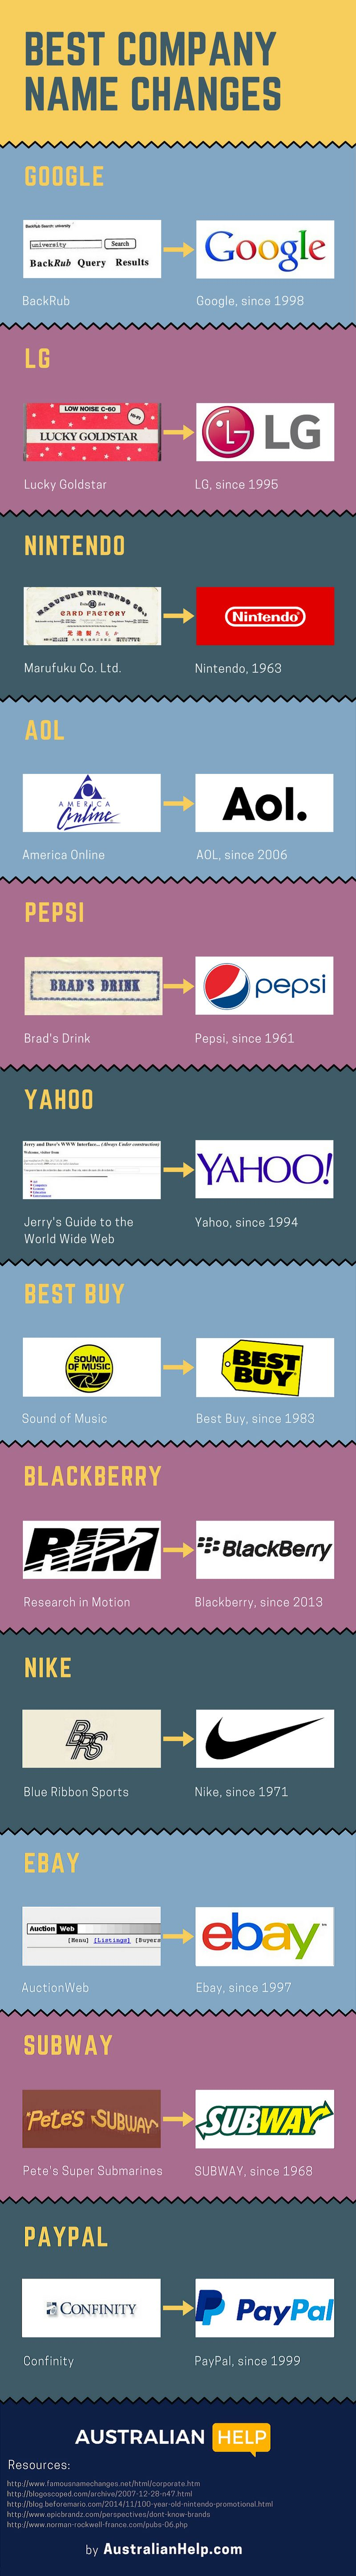 Best Company Name Changes #Infographic